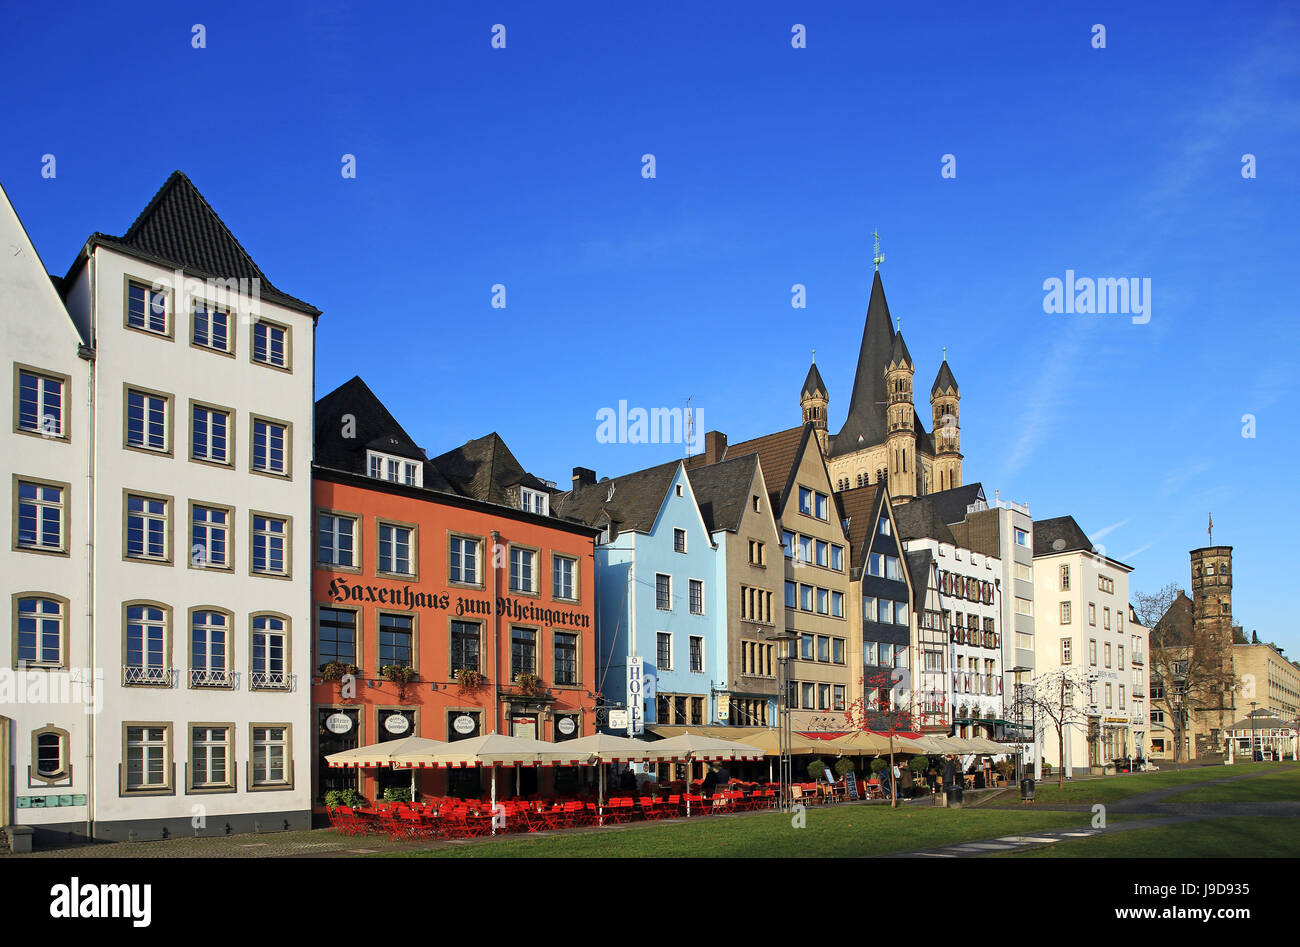 fischmarkt stockfotos fischmarkt bilder alamy. Black Bedroom Furniture Sets. Home Design Ideas